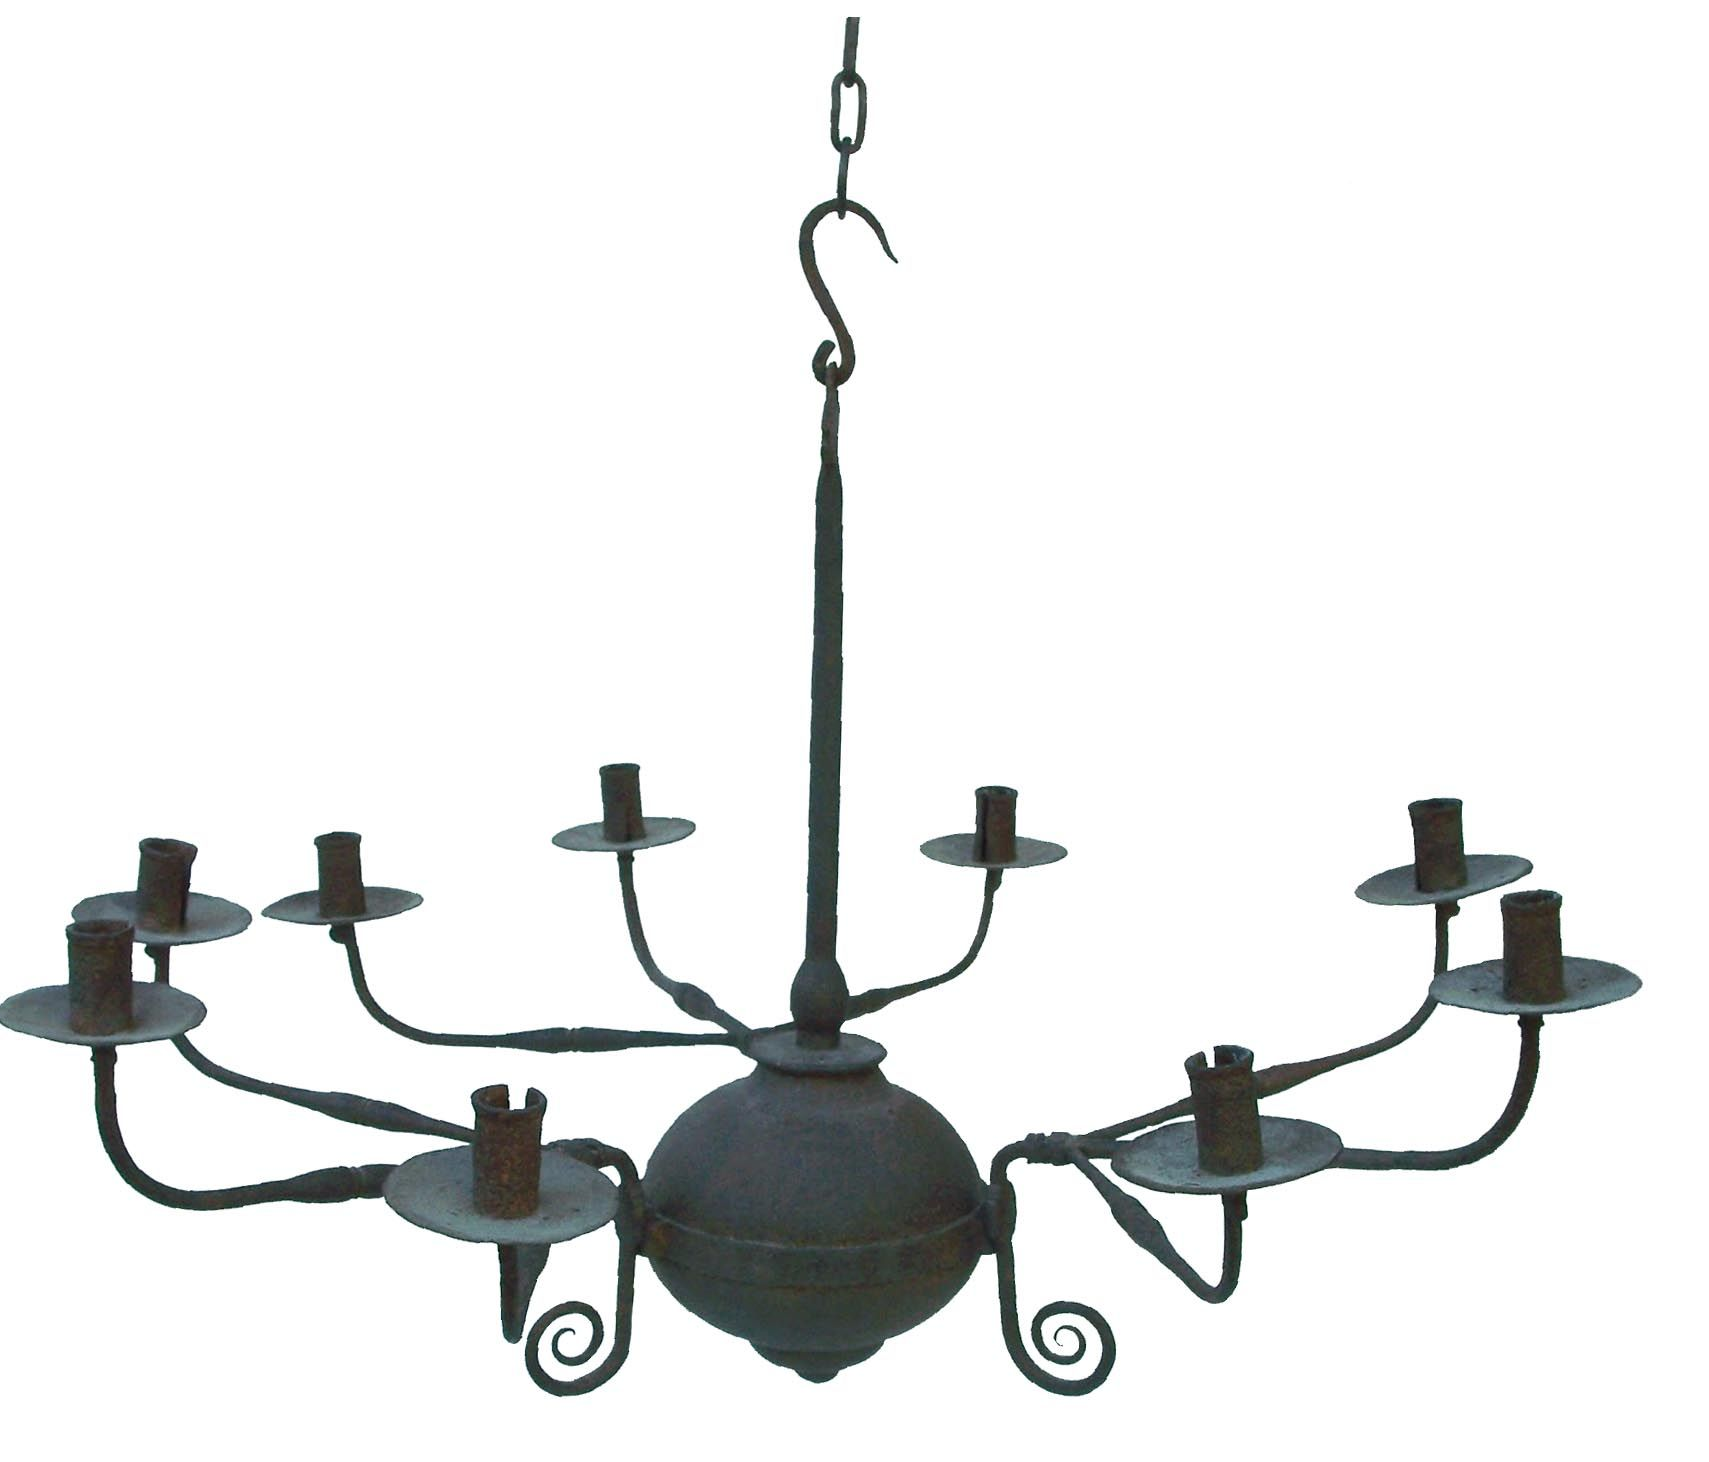 18th century hand forged Chandelier from a private collection in